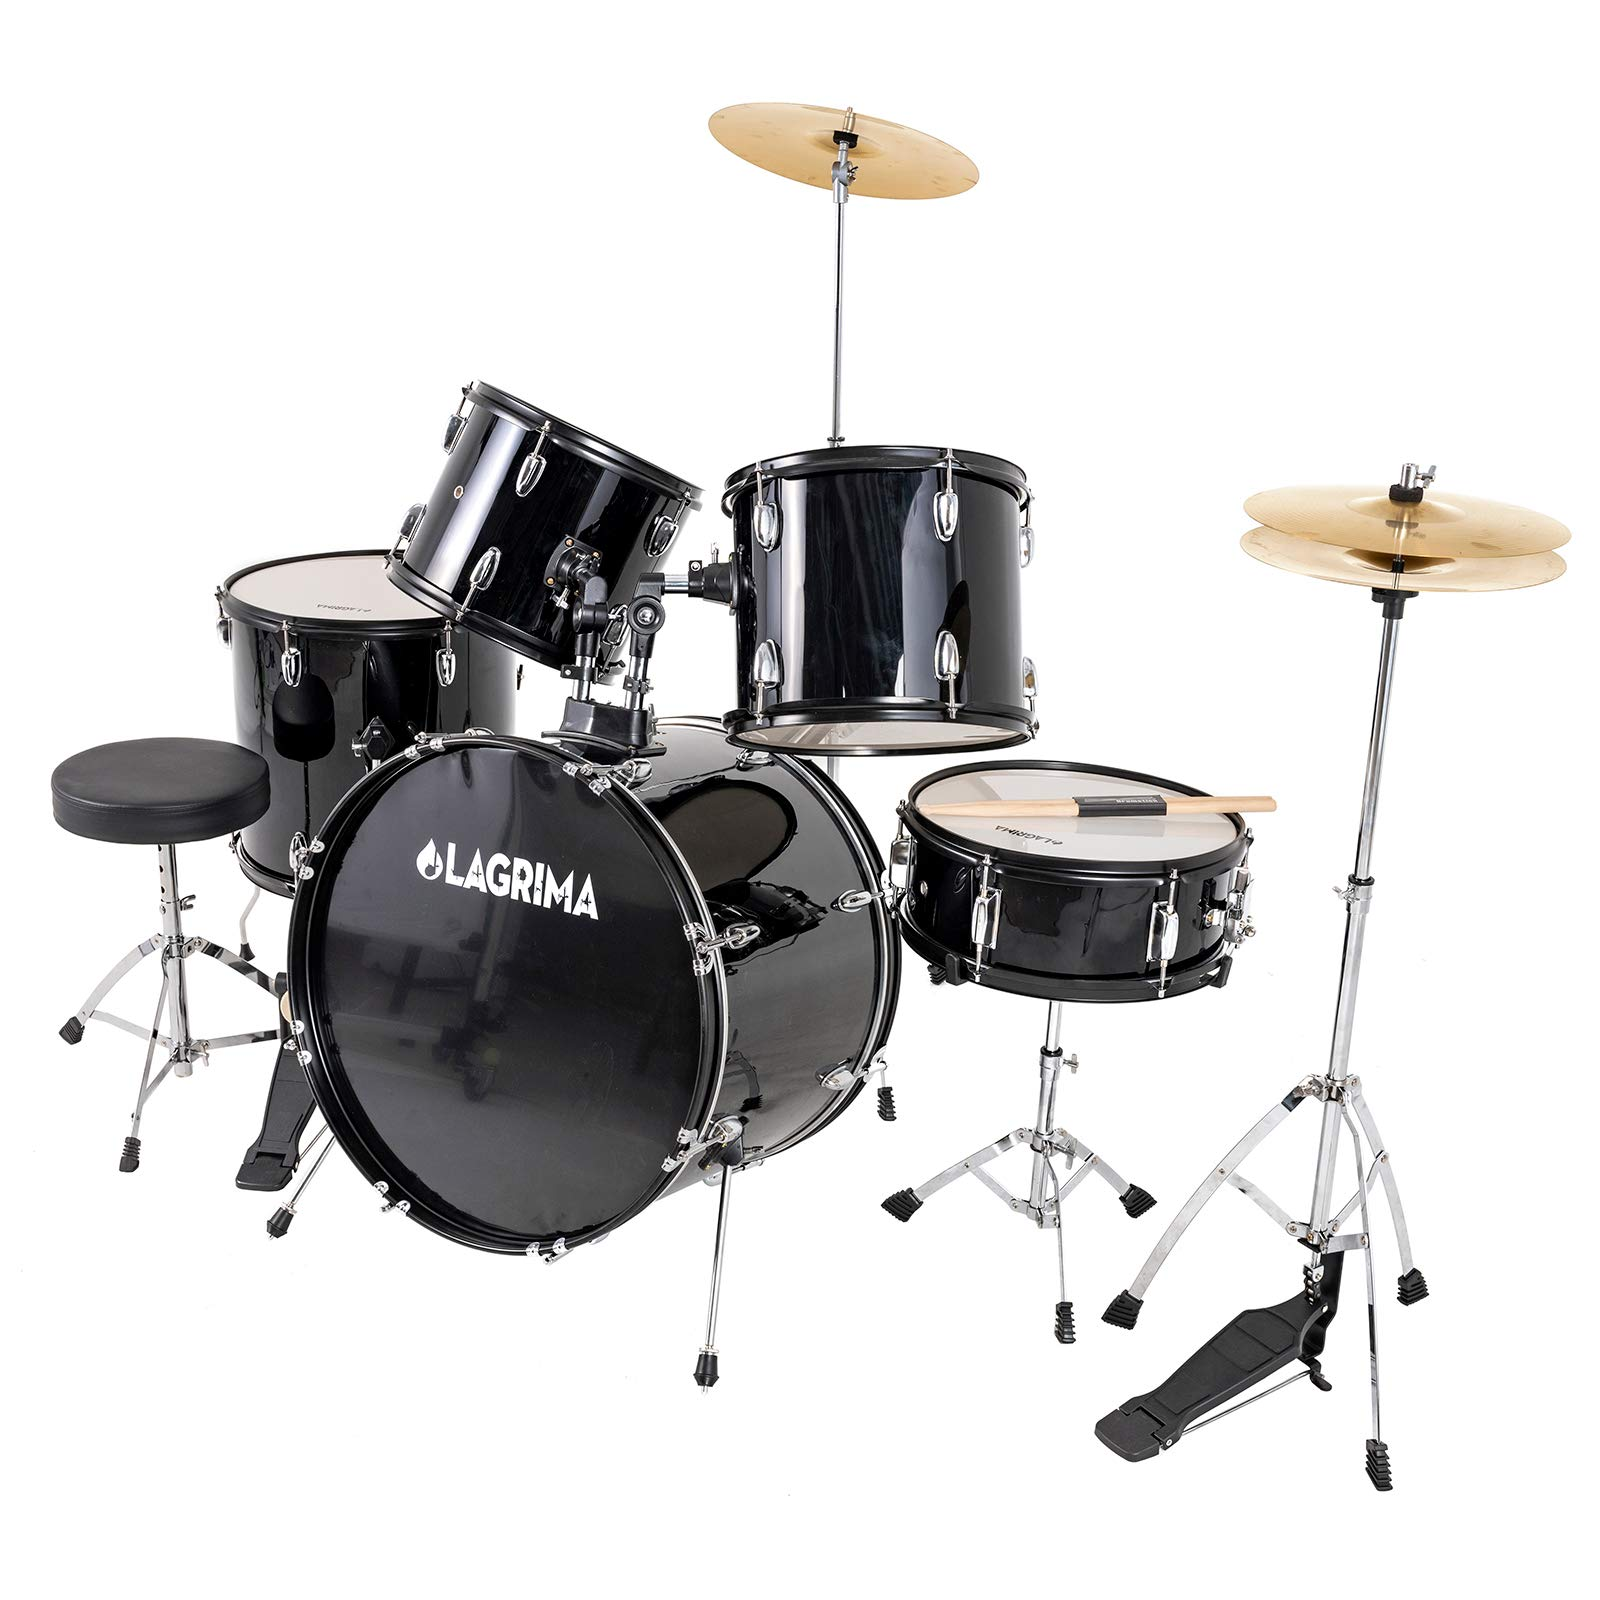 LAGRIMA 5 Piece Full Size Drum Set with Stand, Cymbals, Hi-Hat, Pedal, Adjustable Drum Stool and 2 Drum Sticks for Adult/Kids(Black, 22 Inches) by LAGRIMA